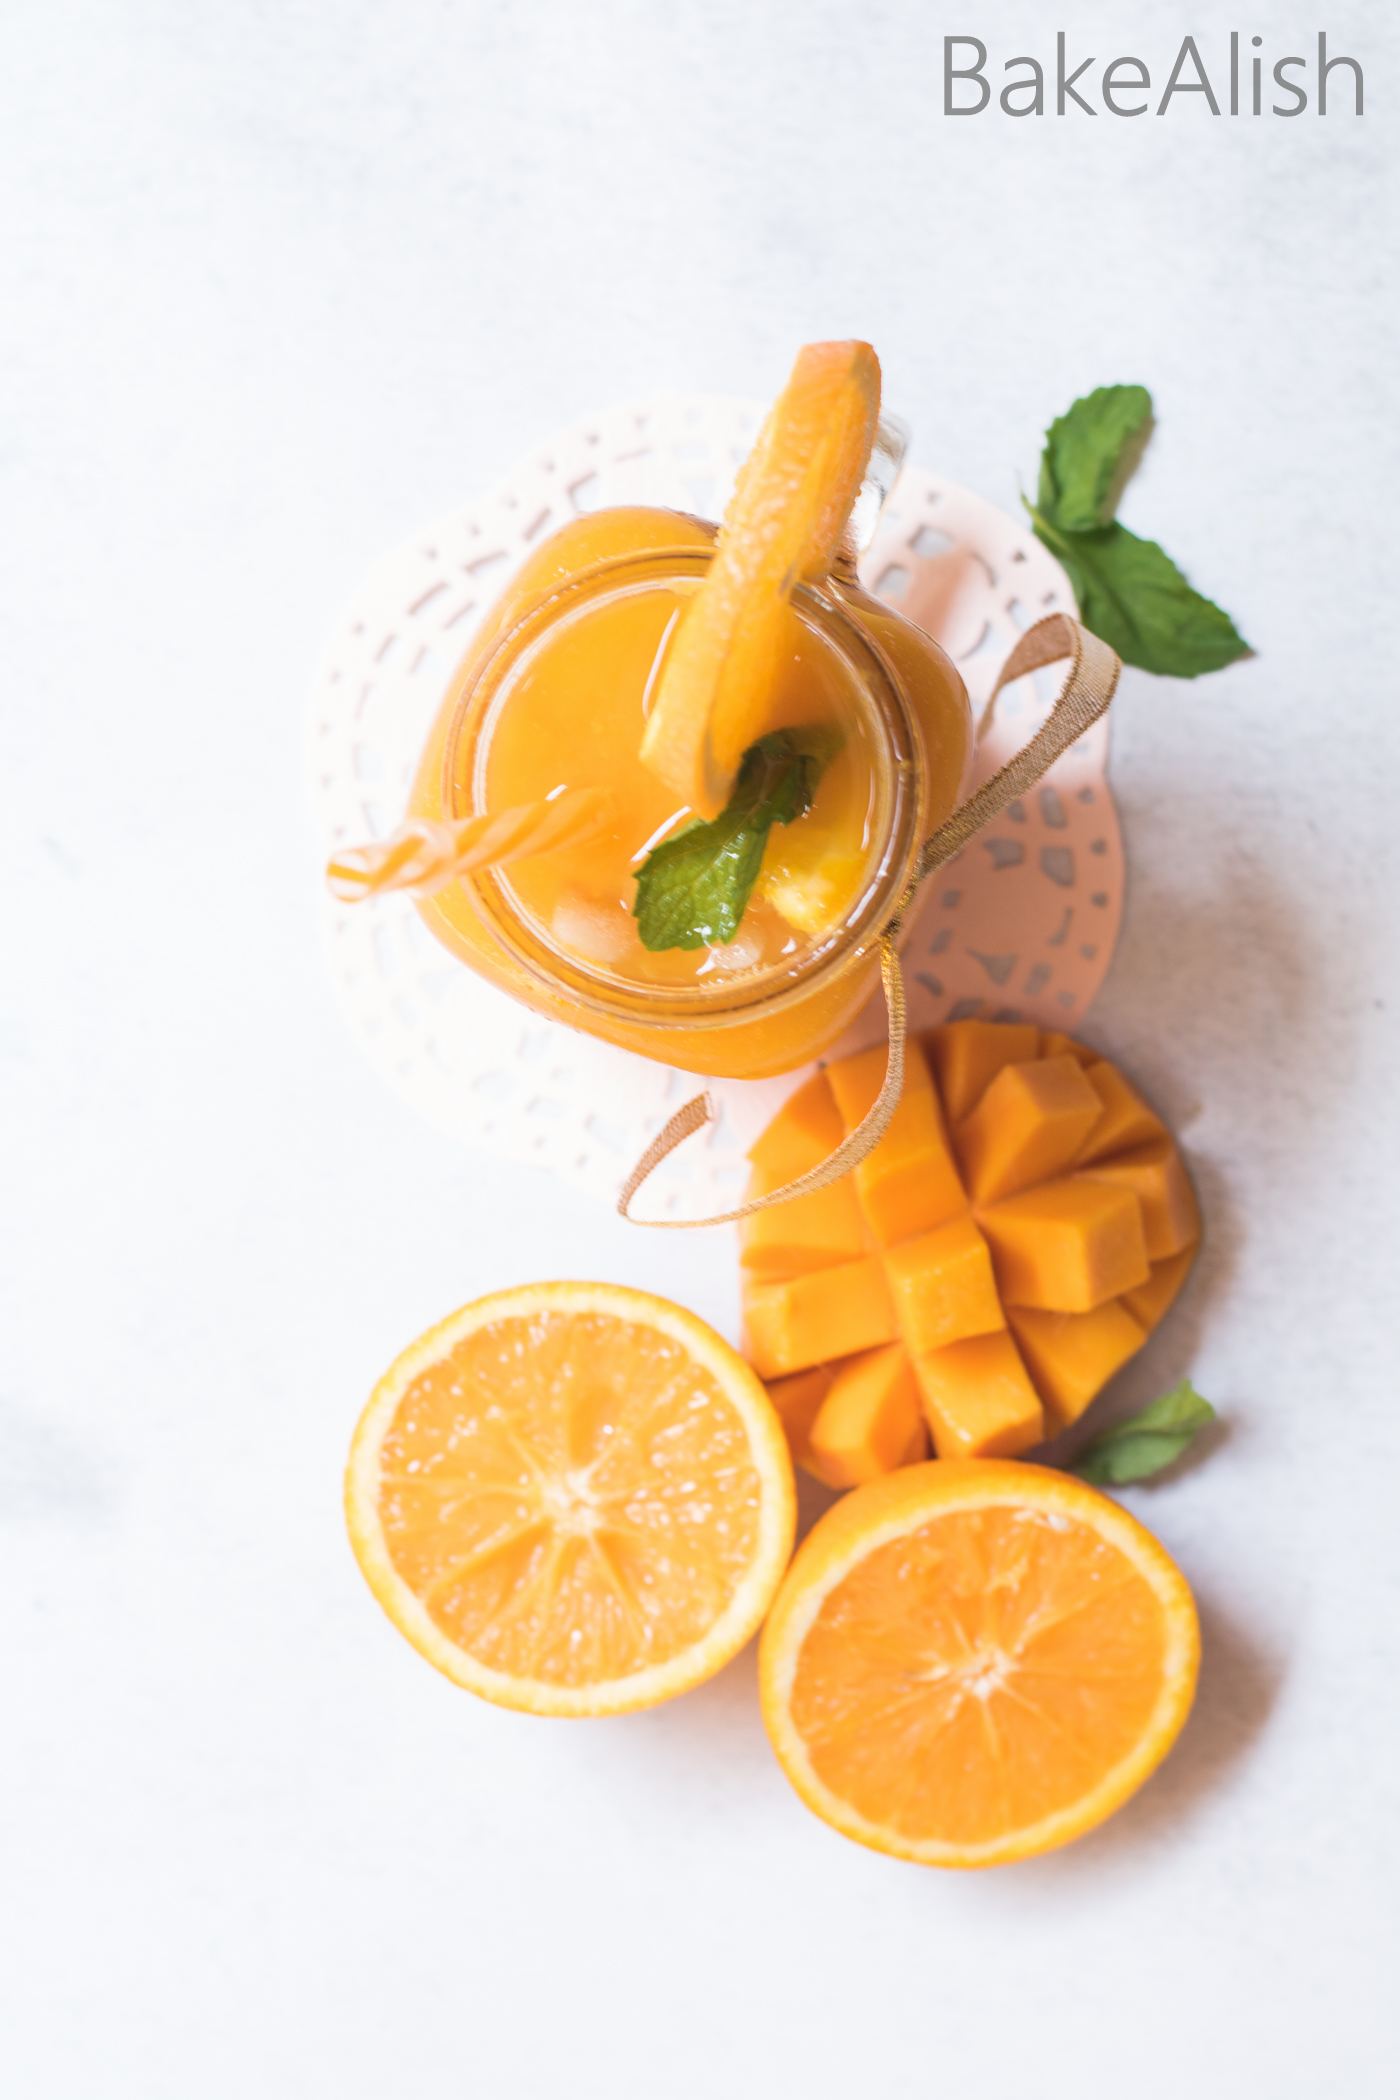 This Sparkling Mango Orange drink is so refreshing and perfect for the summers. Its got the king of all fruits, Mango along with a citrus tinge, Orange. When combined with some sparkling water it takes this punch to the next level. Crushed mint and lots of ice makes this the perfect summer drink.